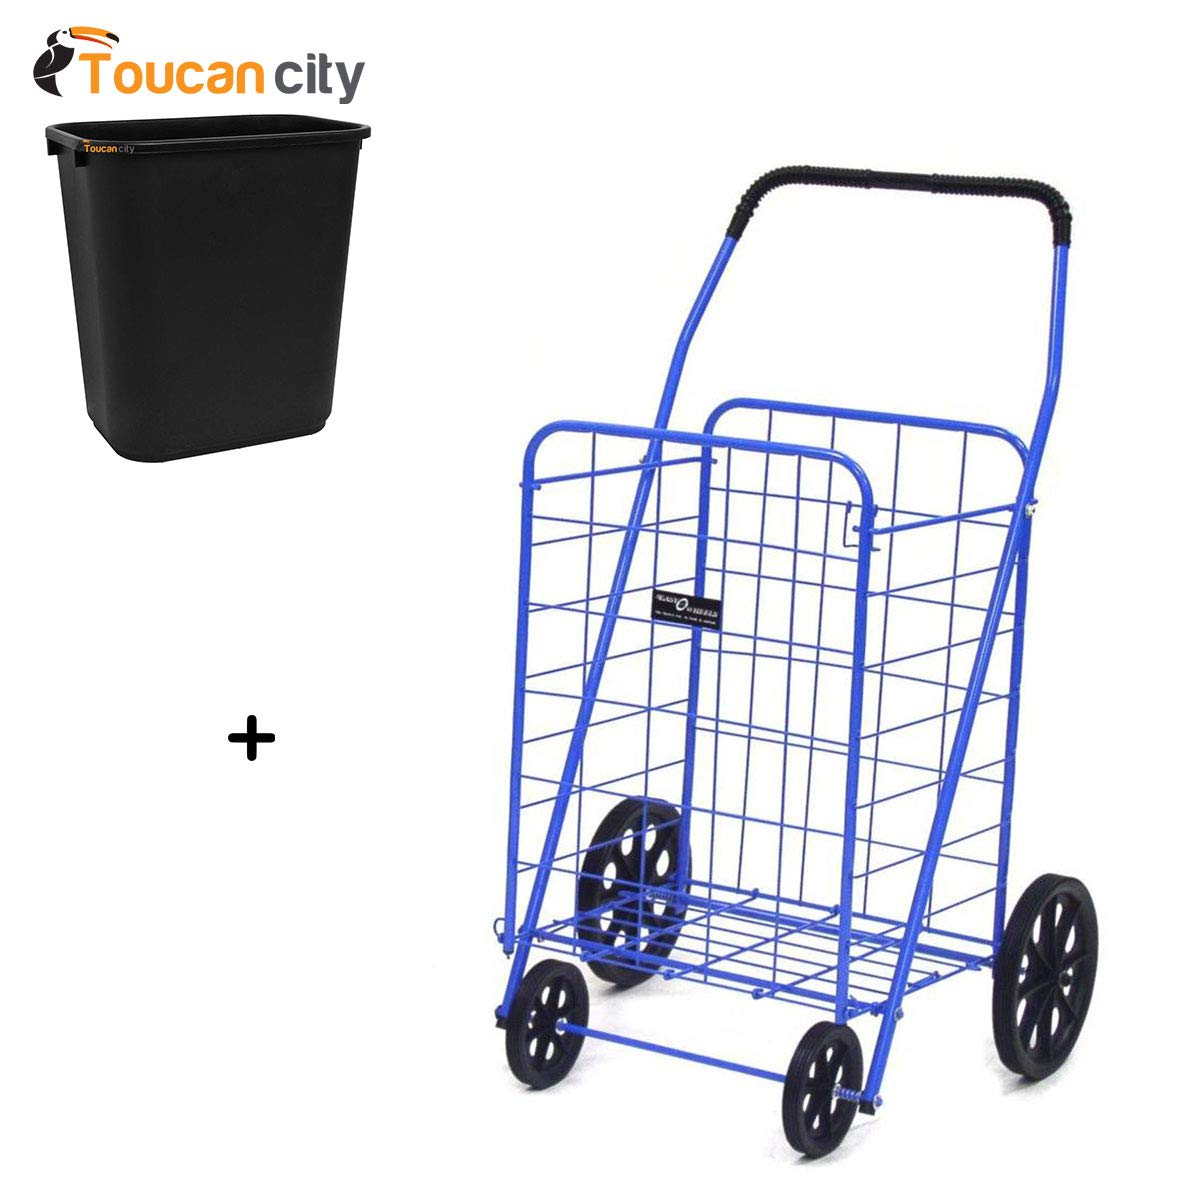 Toucan City 7 Gal Trash Can and Easy Wheels Jumbo-A Shopping Cart in Blue 011BL